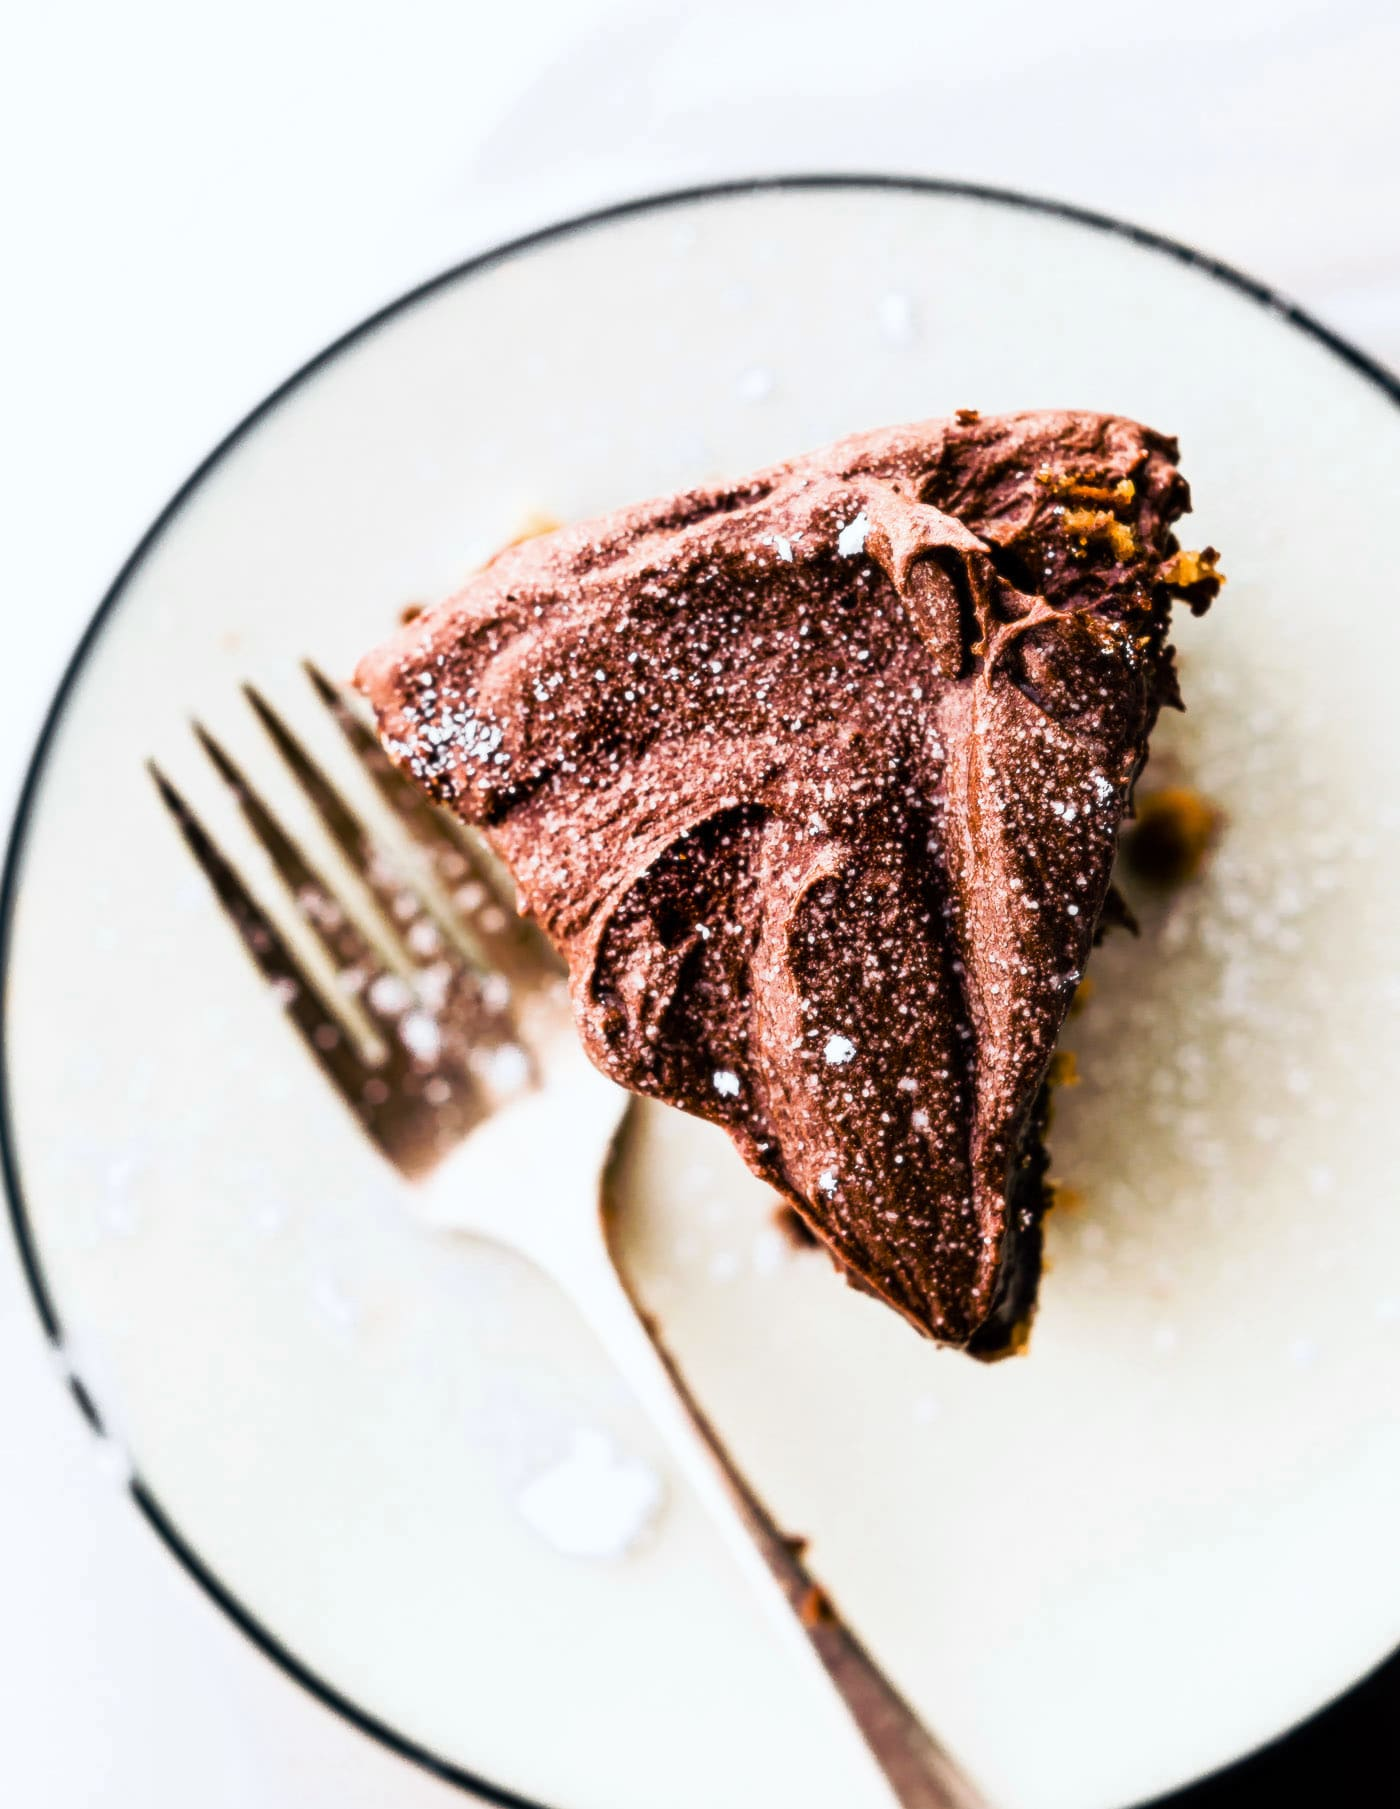 The best Vegan White Cake with Chocolate Coconut Frosting!